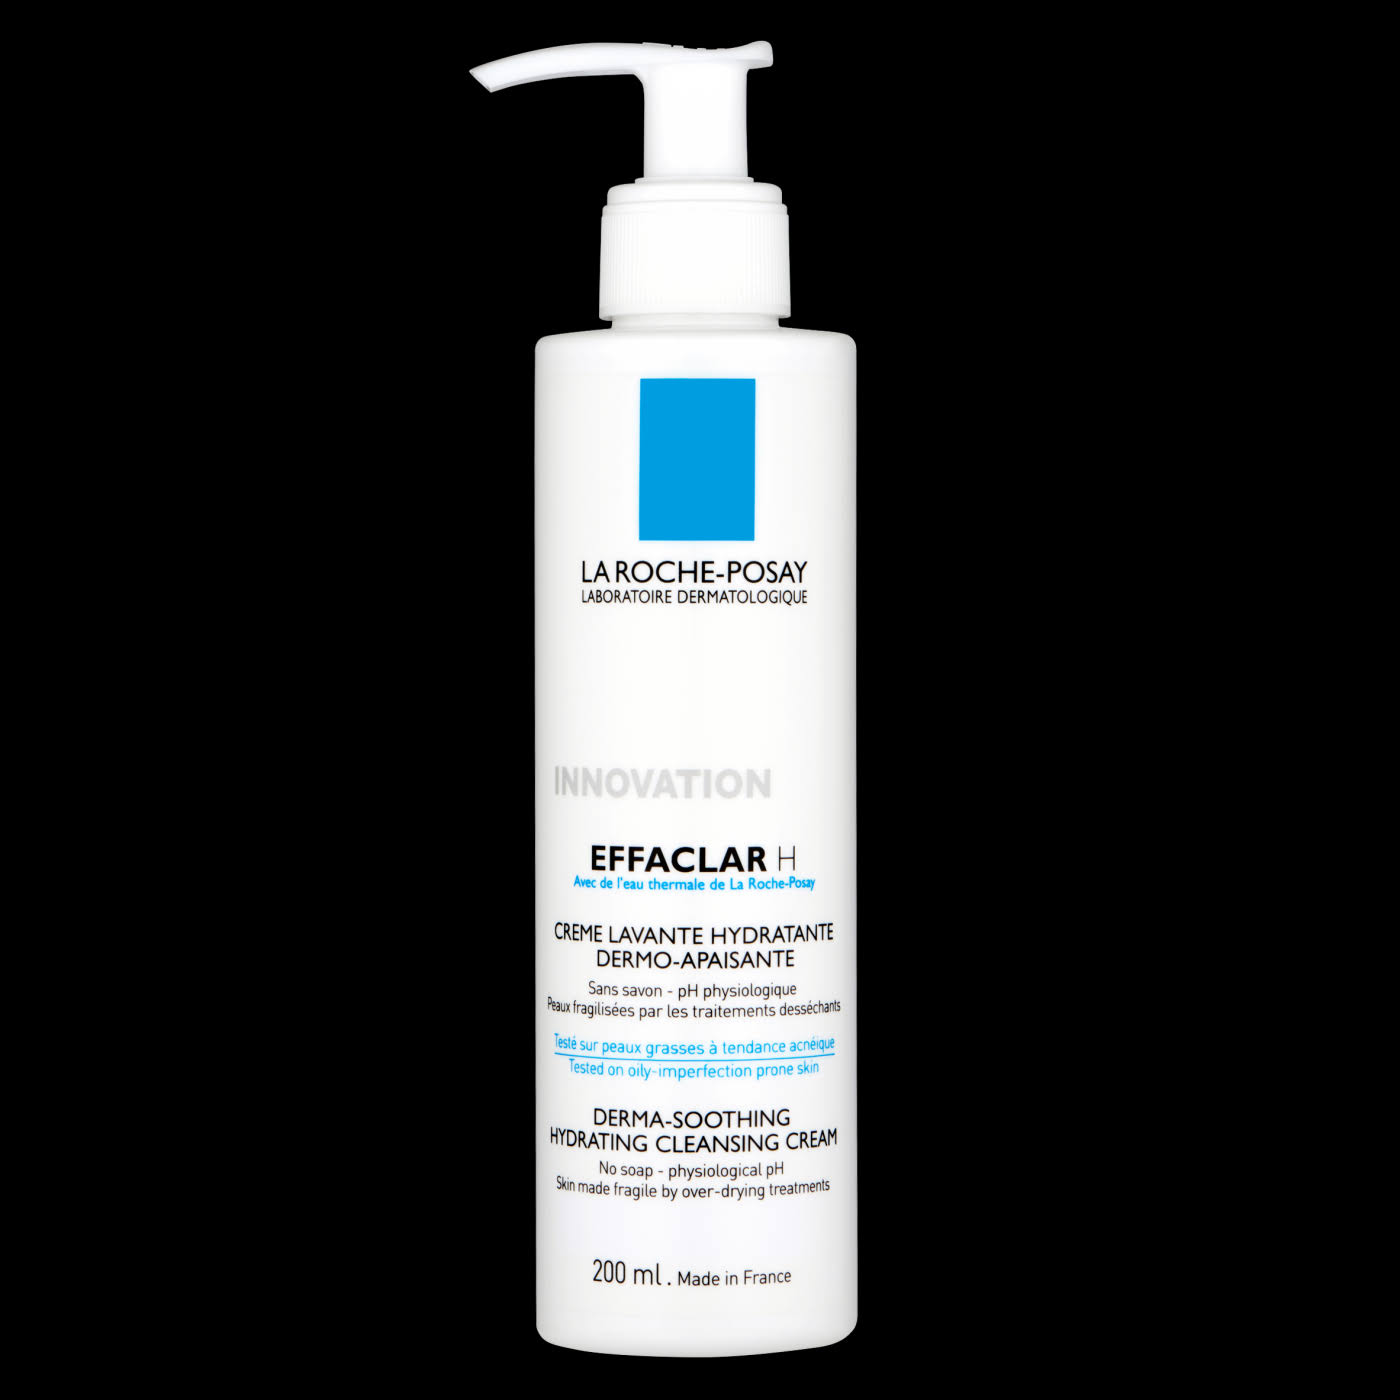 La Roche Posay Effaclar H Cleansing Facial Cream - 200ml